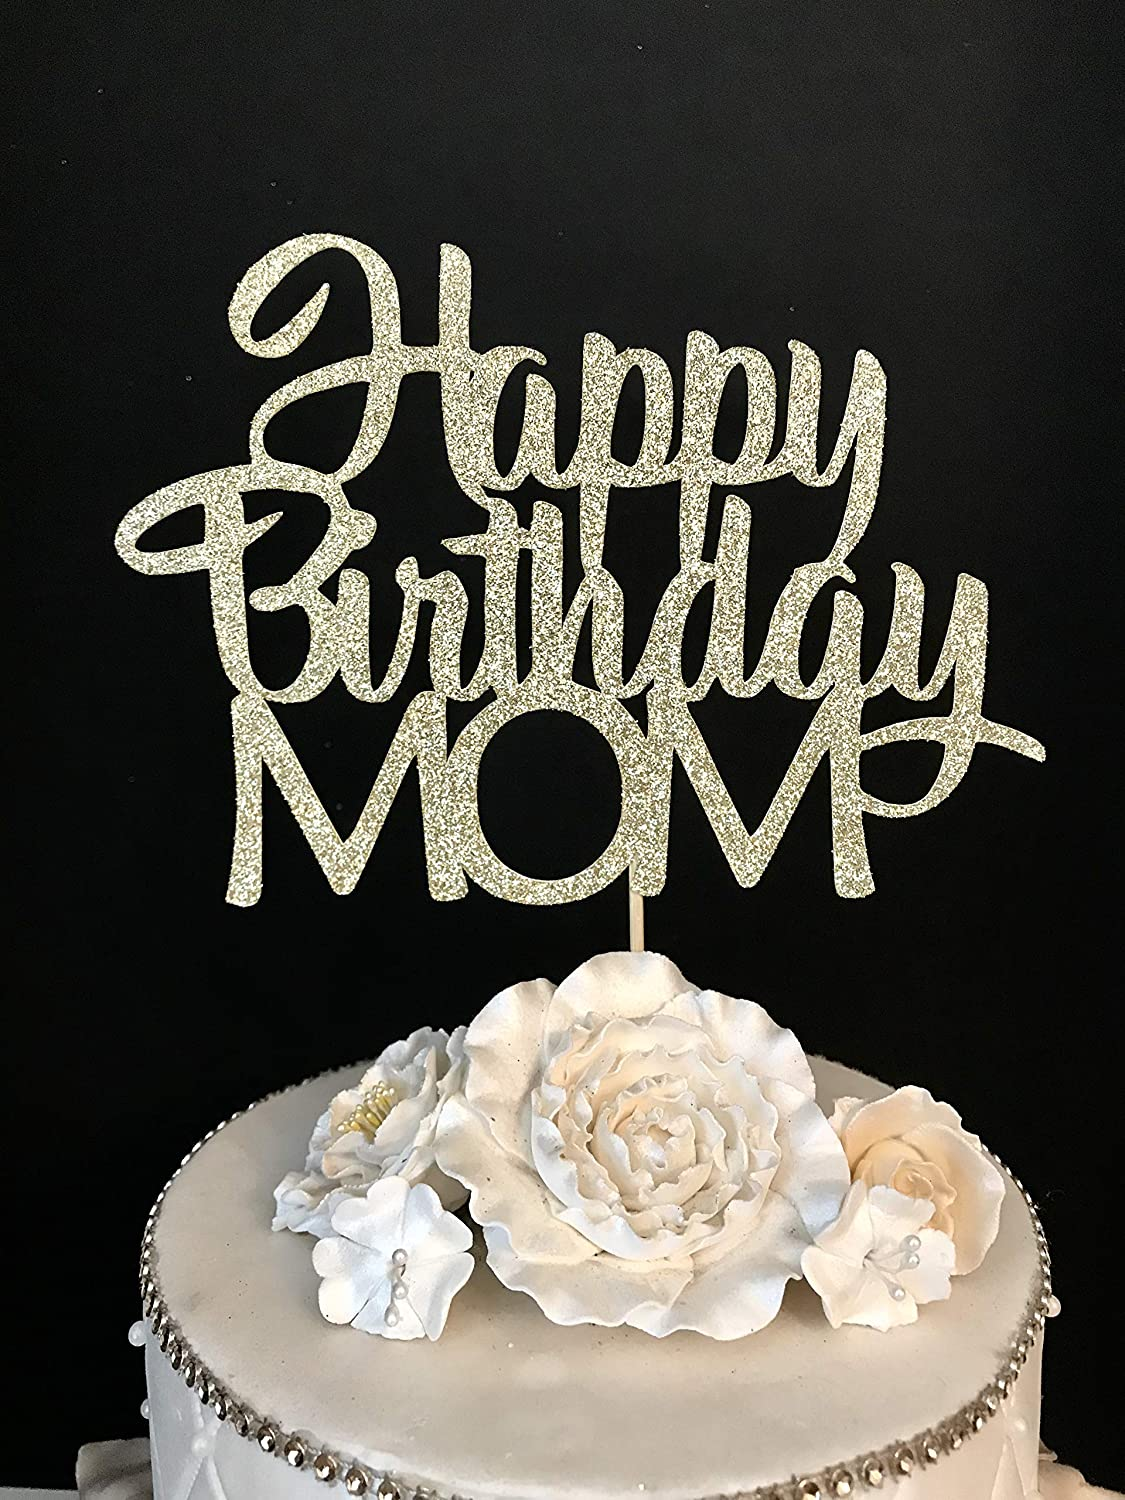 Awe Inspiring Amazon Com Happy Birthday Mom Cake Topper Arts Crafts Sewing Funny Birthday Cards Online Alyptdamsfinfo